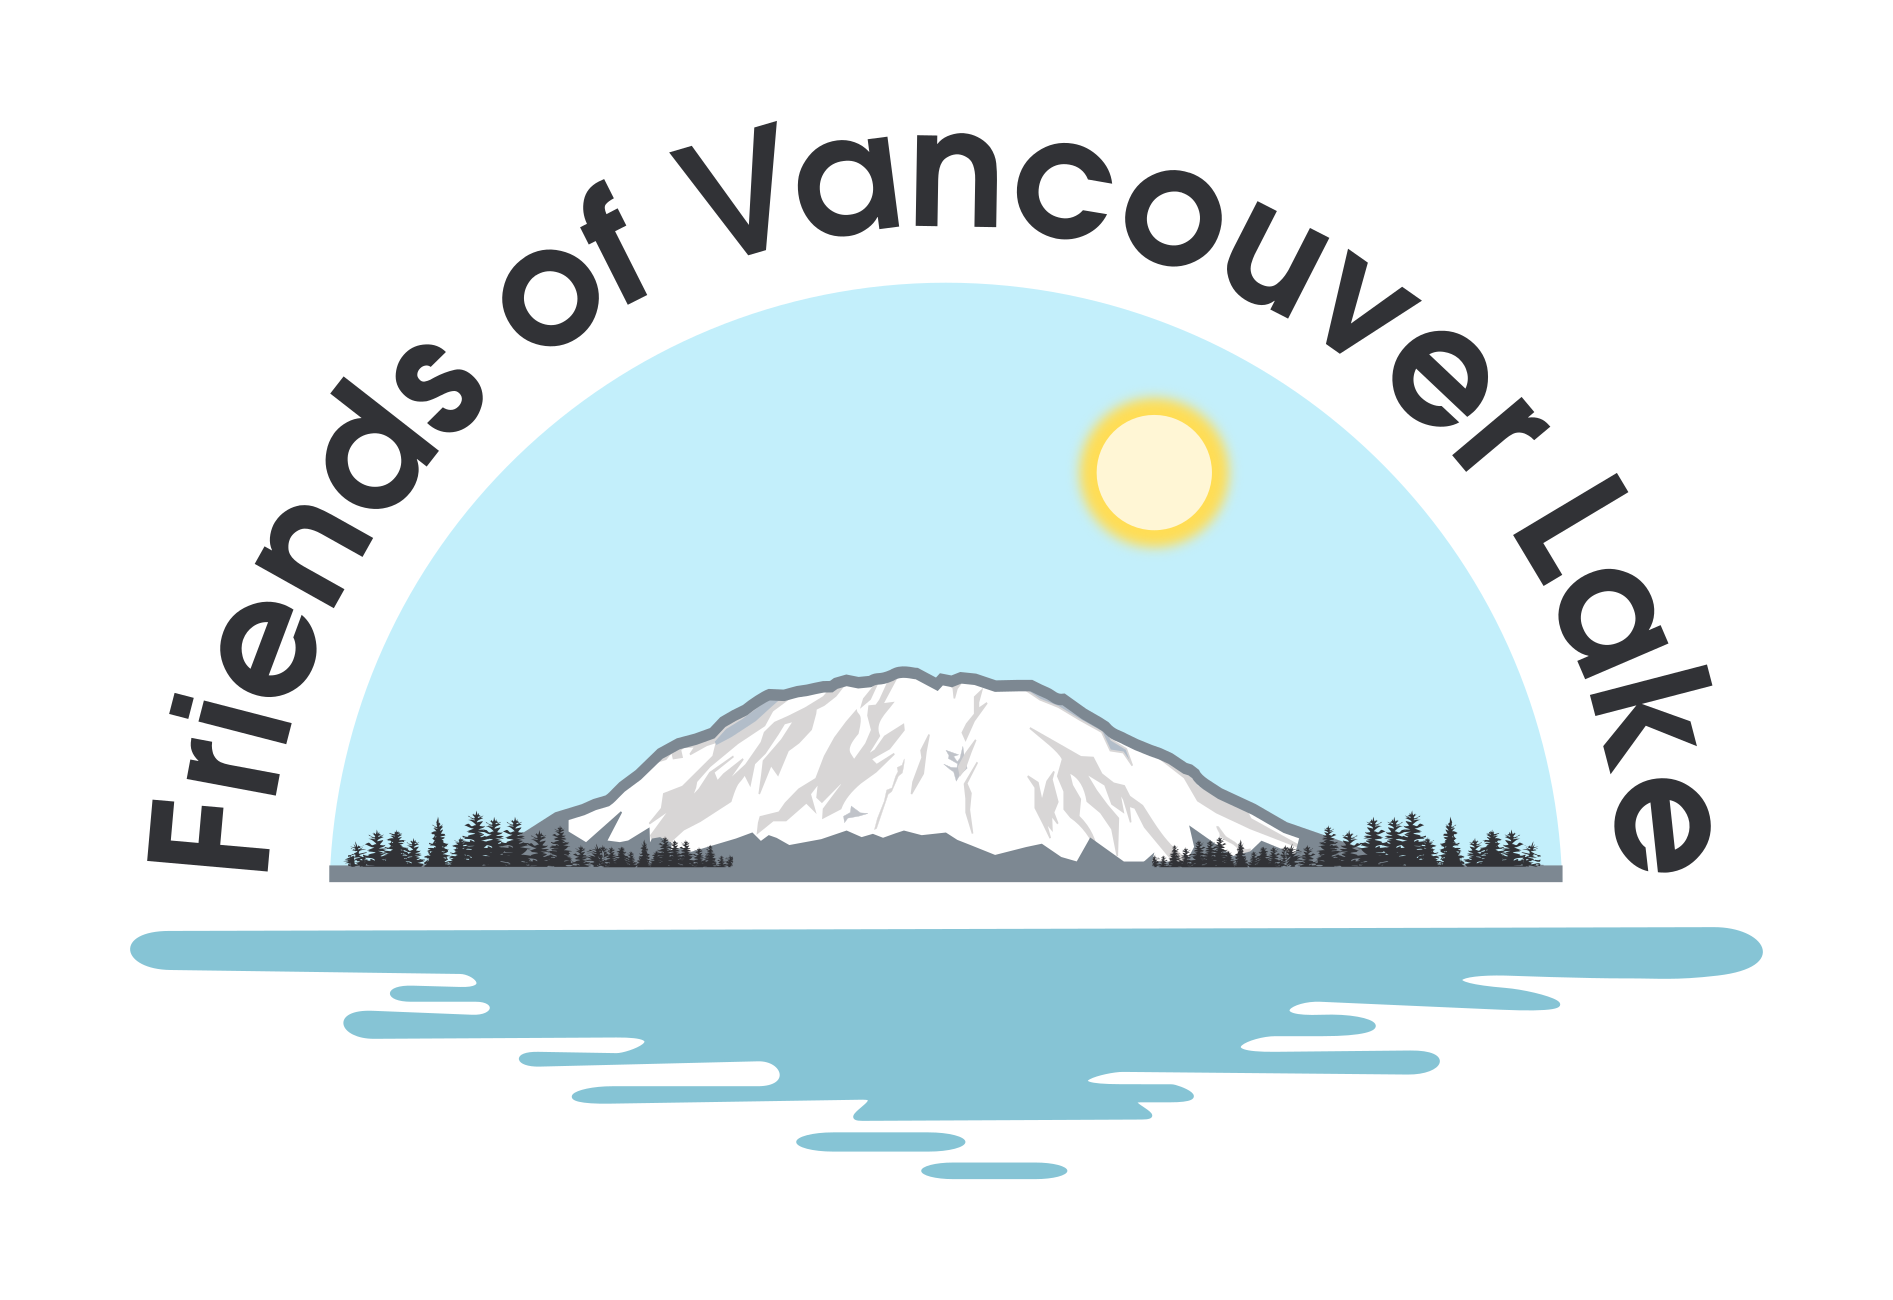 Friends of Vancouver Lake